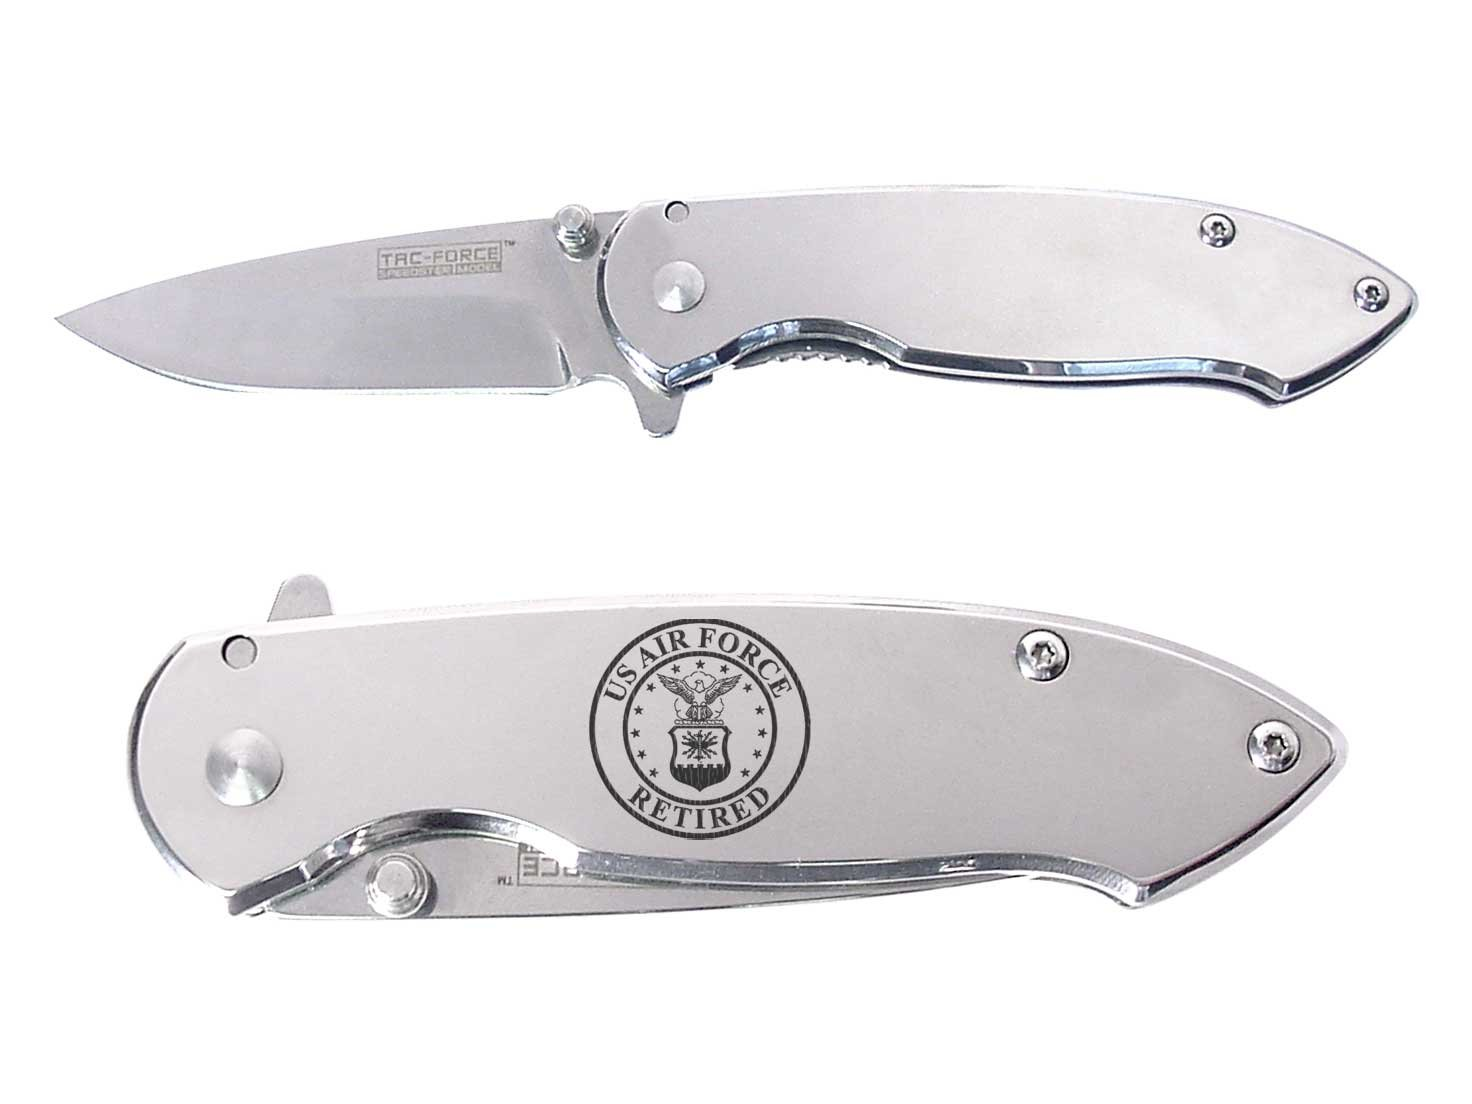 USAF Air Force Round Retired engraved Mirror Finish TAC-Force TF-862C Speedster Executive Model Folding Pocket Knife by NDZ Performance xc3 24r e xinje xc3 series plc ac220v di 14 do 10 relay new in box